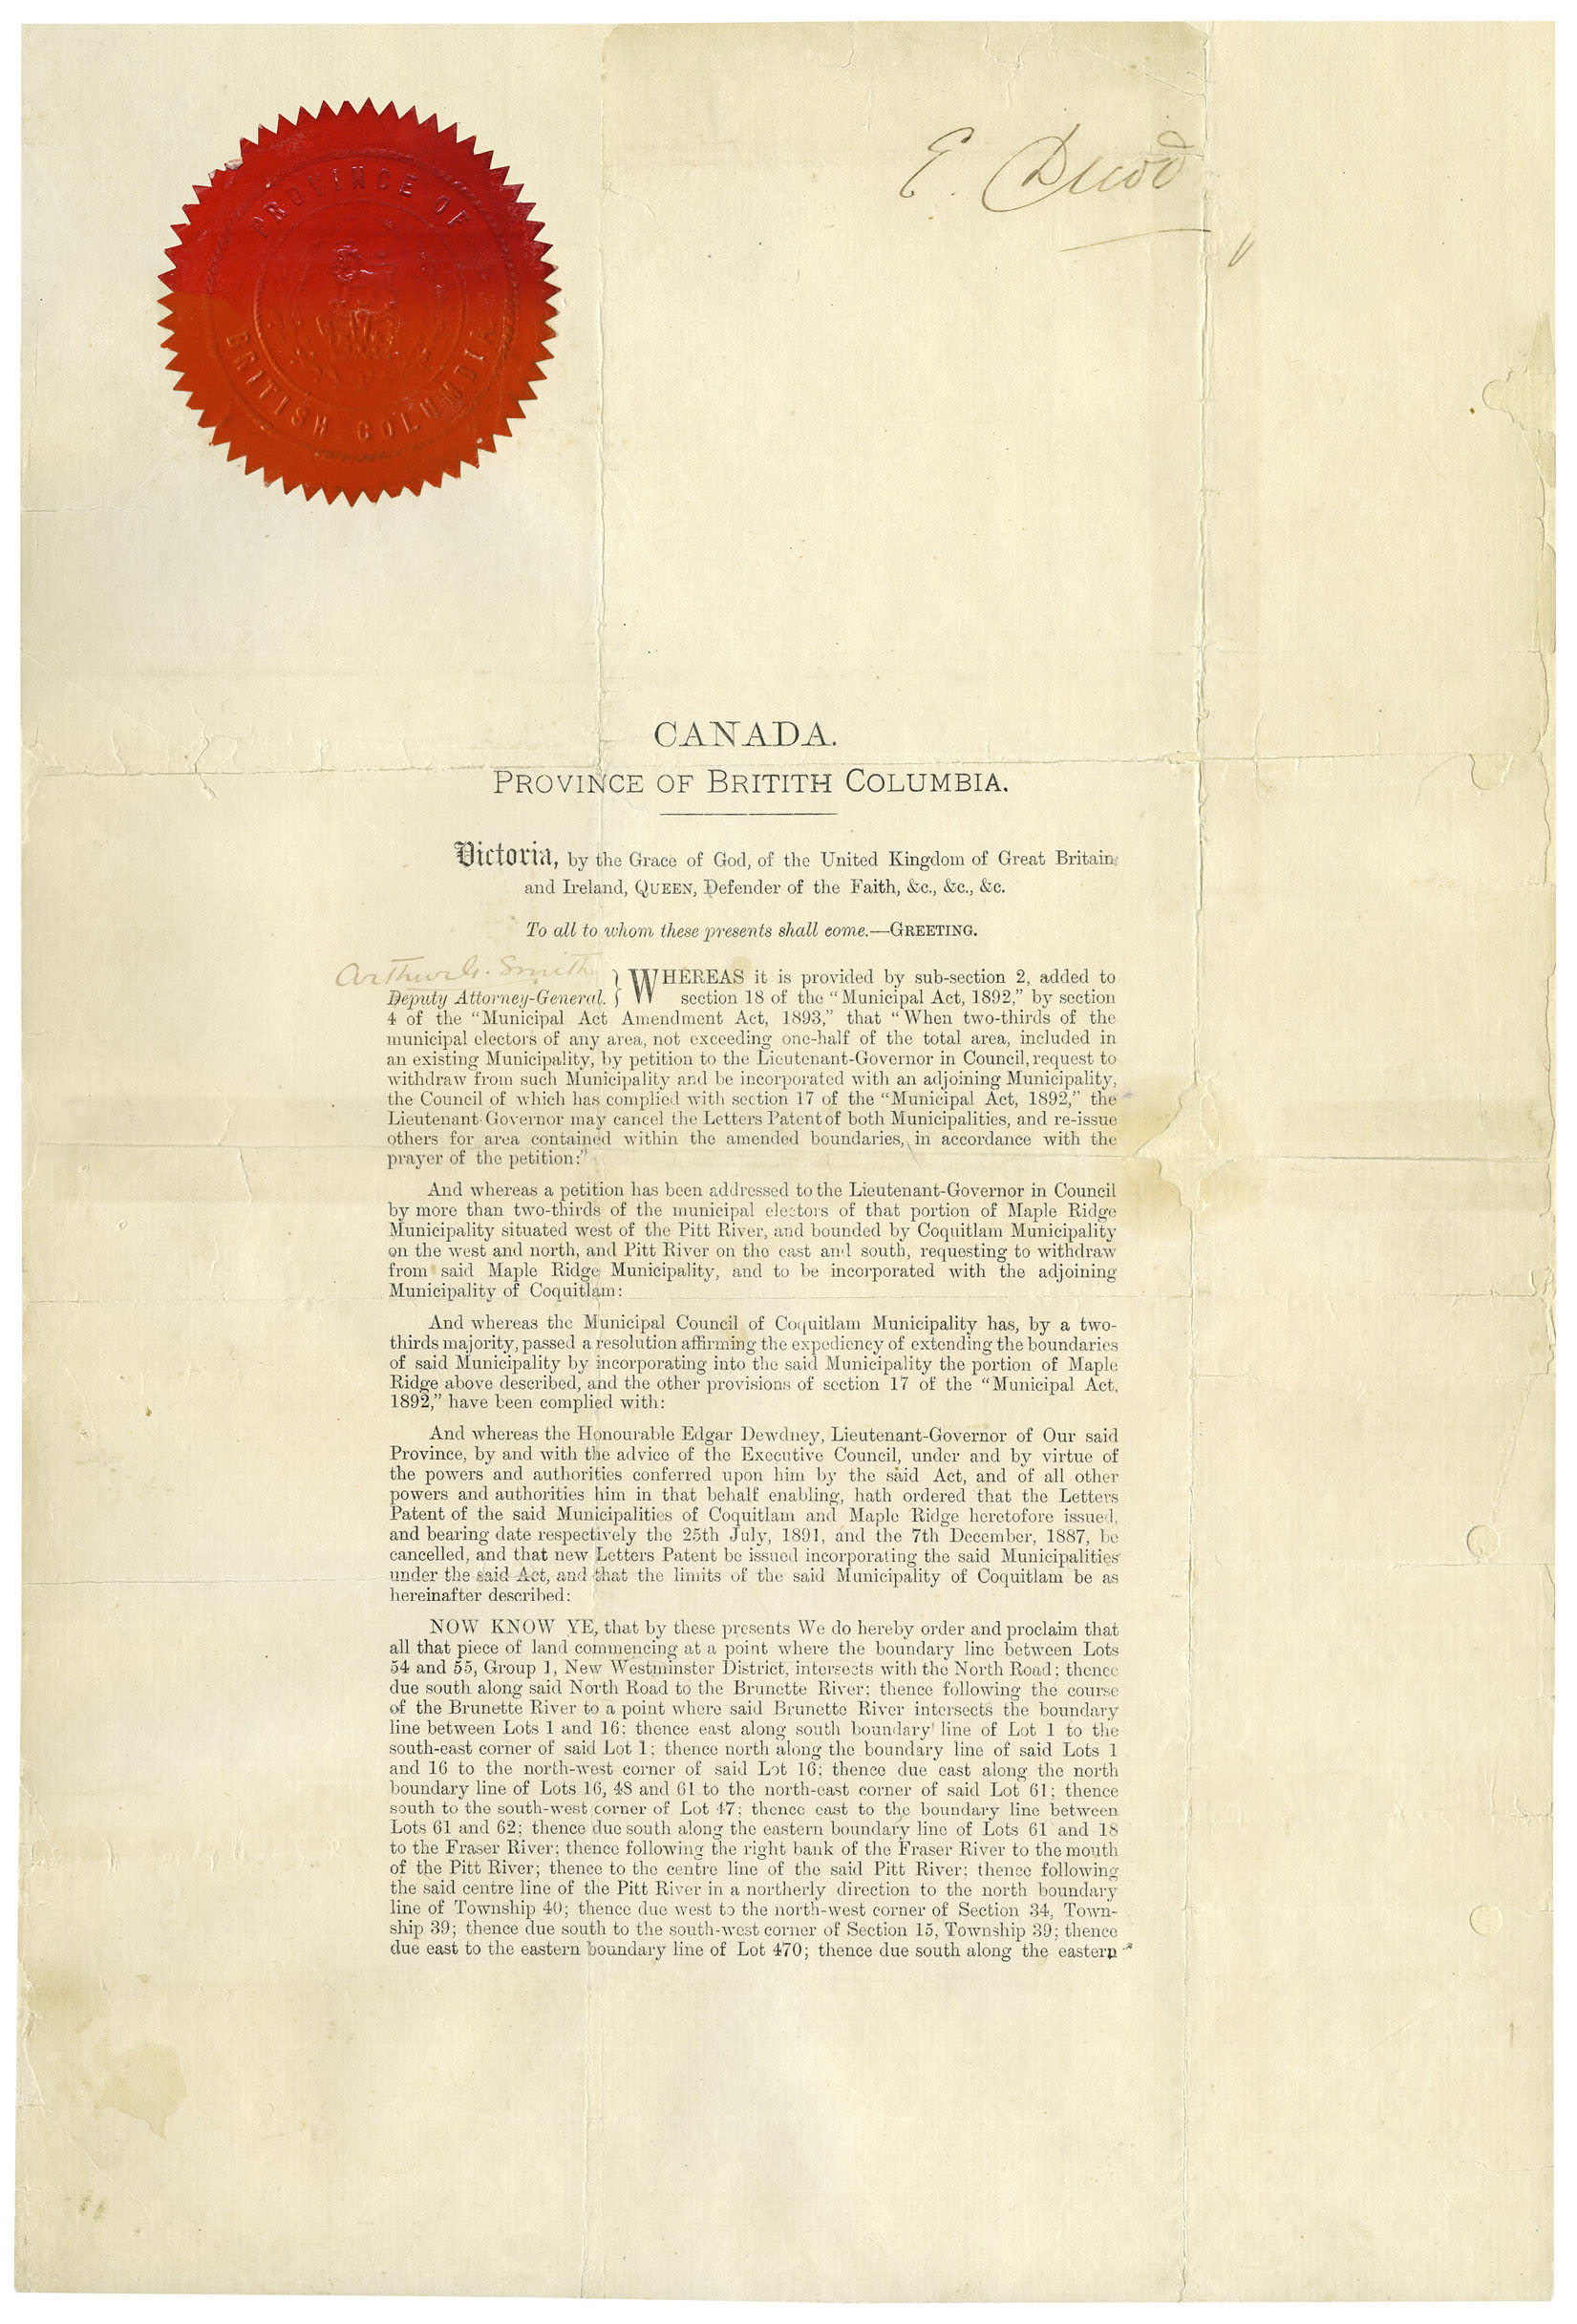 Letters Patent, 1894 (JPG) Opens in new window